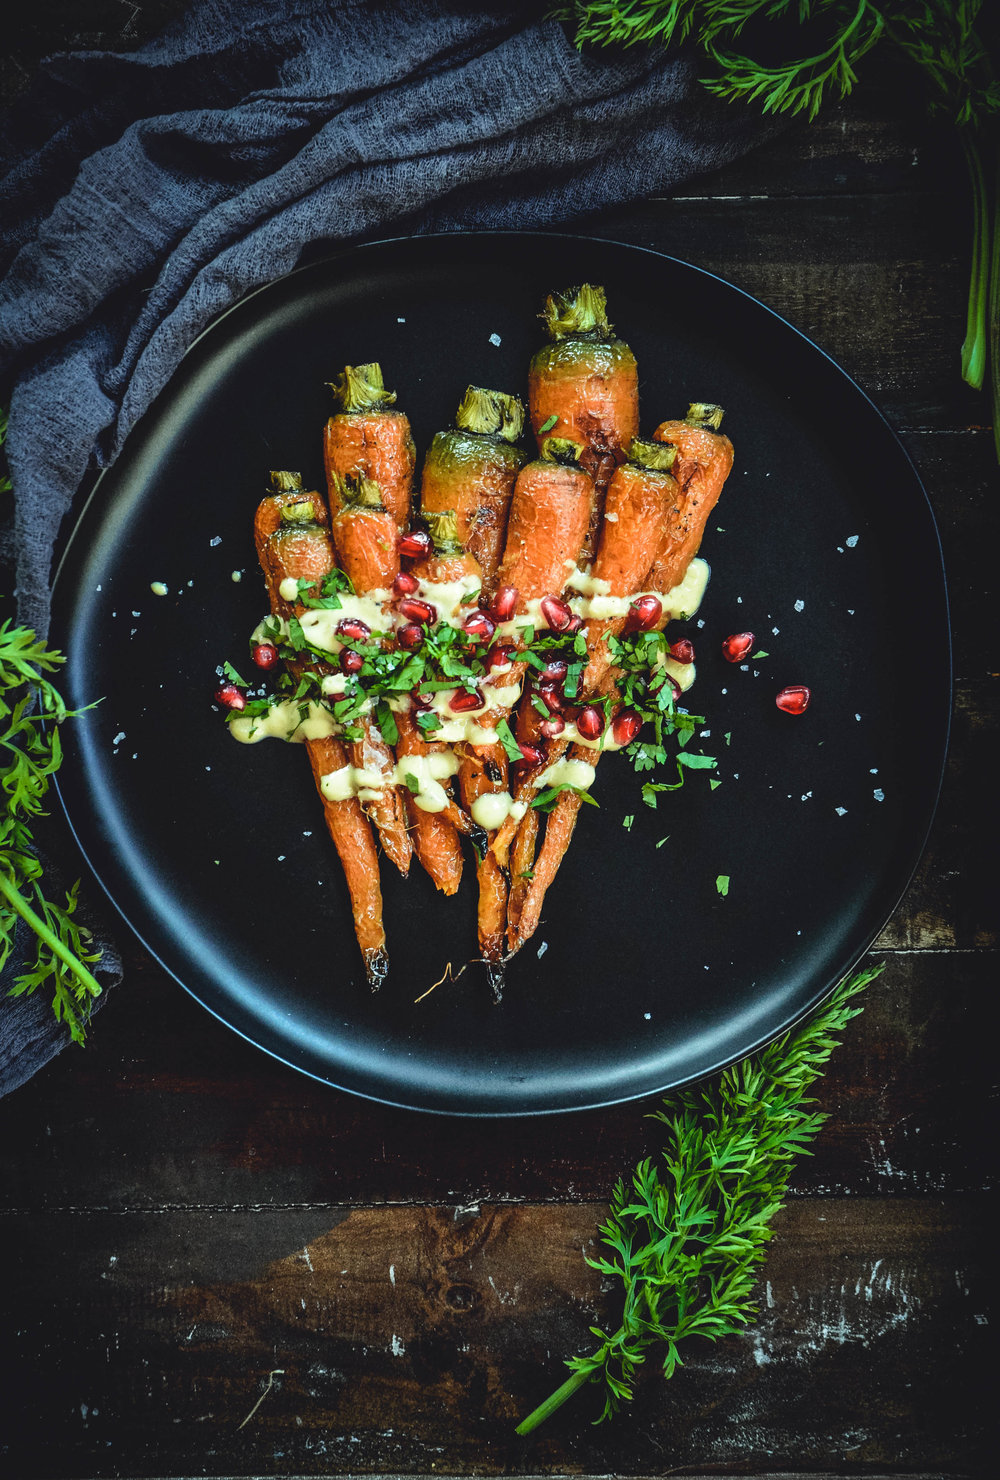 roasted carrots with orange tahini dressing and pomegranate